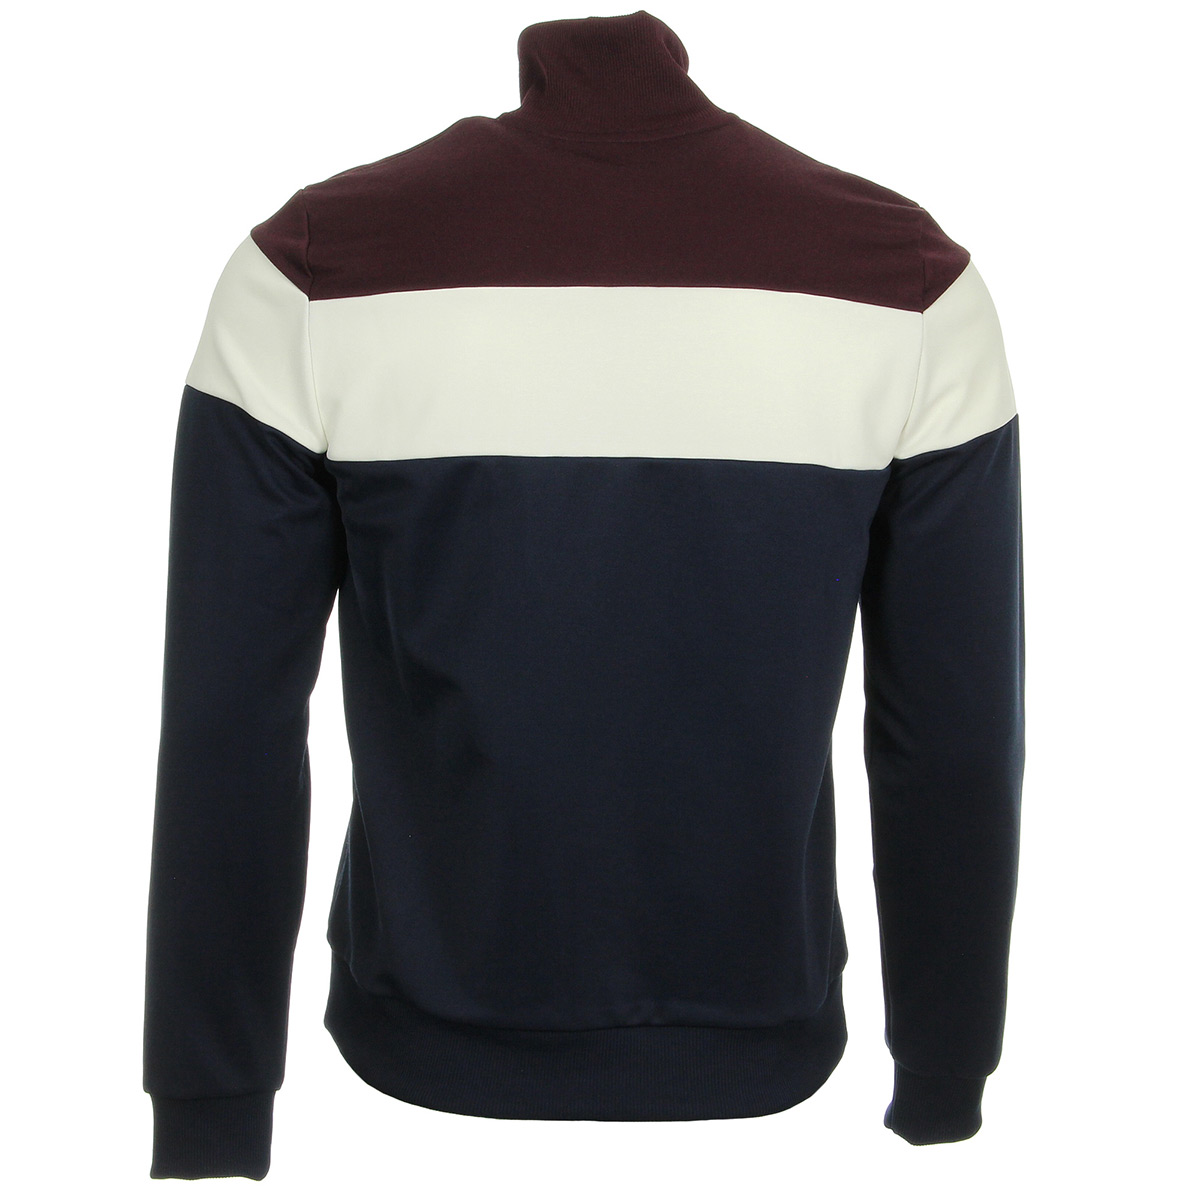 Fred Perry Colour Block Track Jacket J3523266, Vestes sport homme